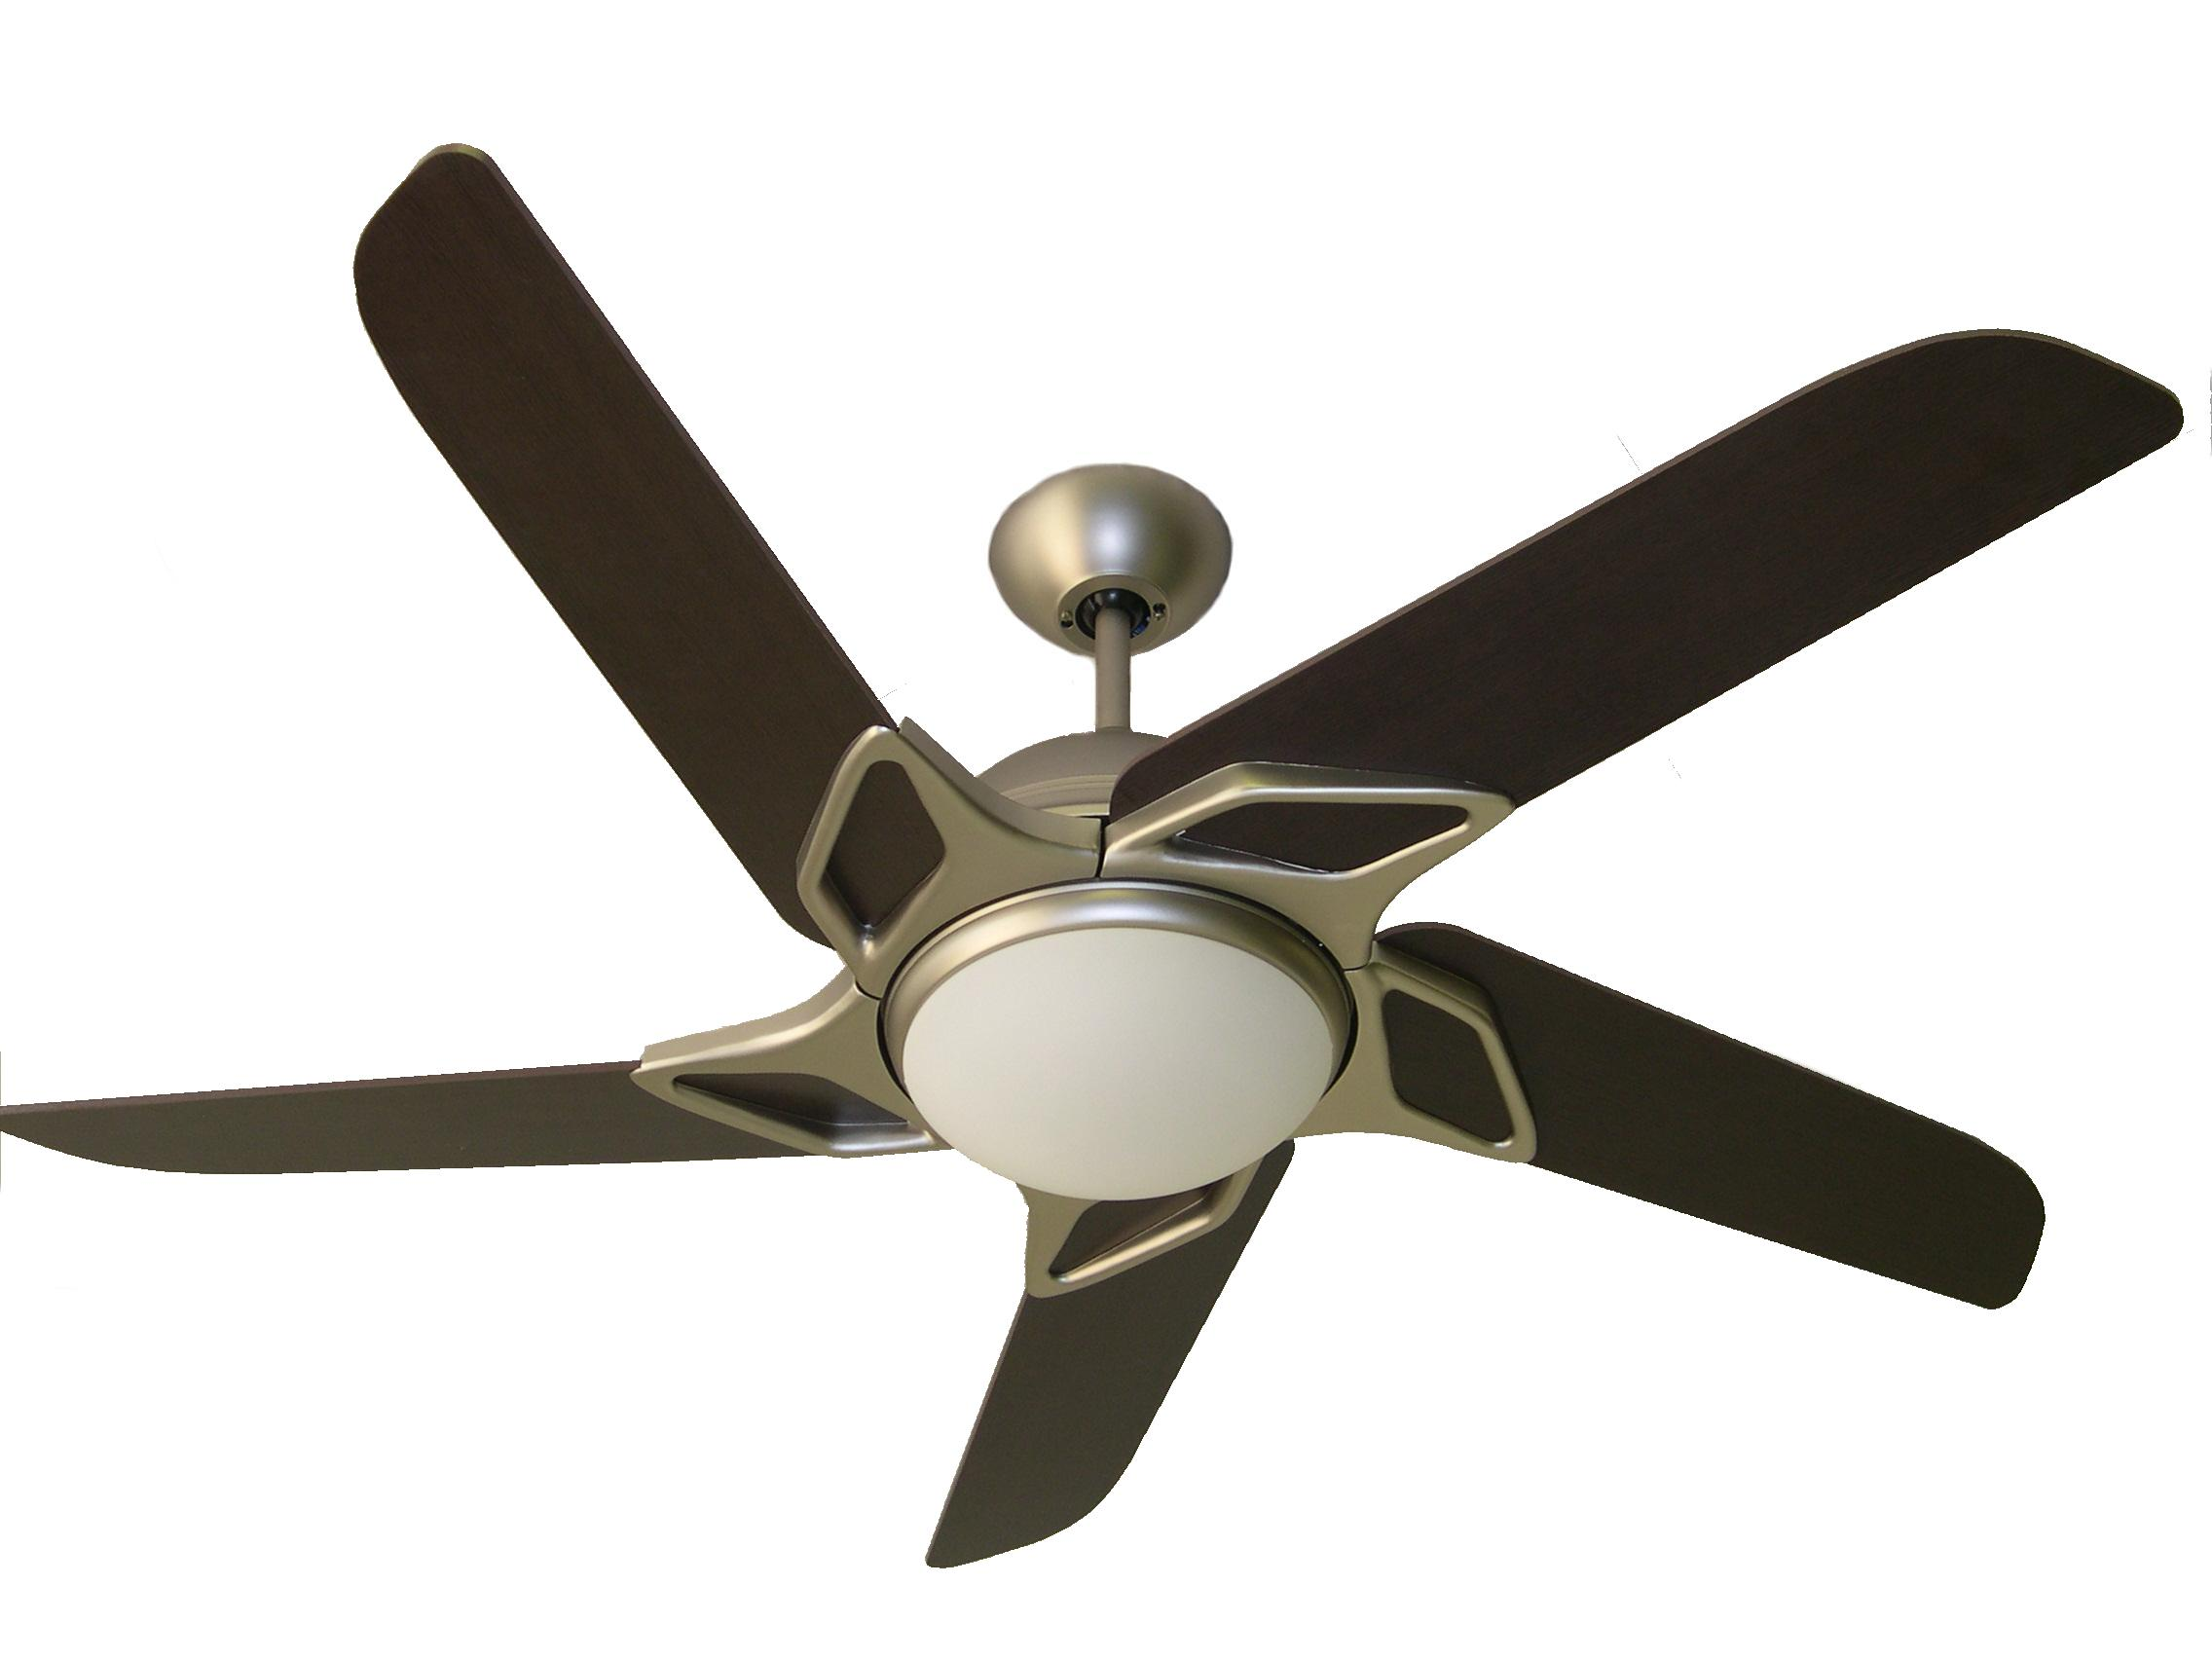 Top 10 Latest Ceiling Fans Of 2020